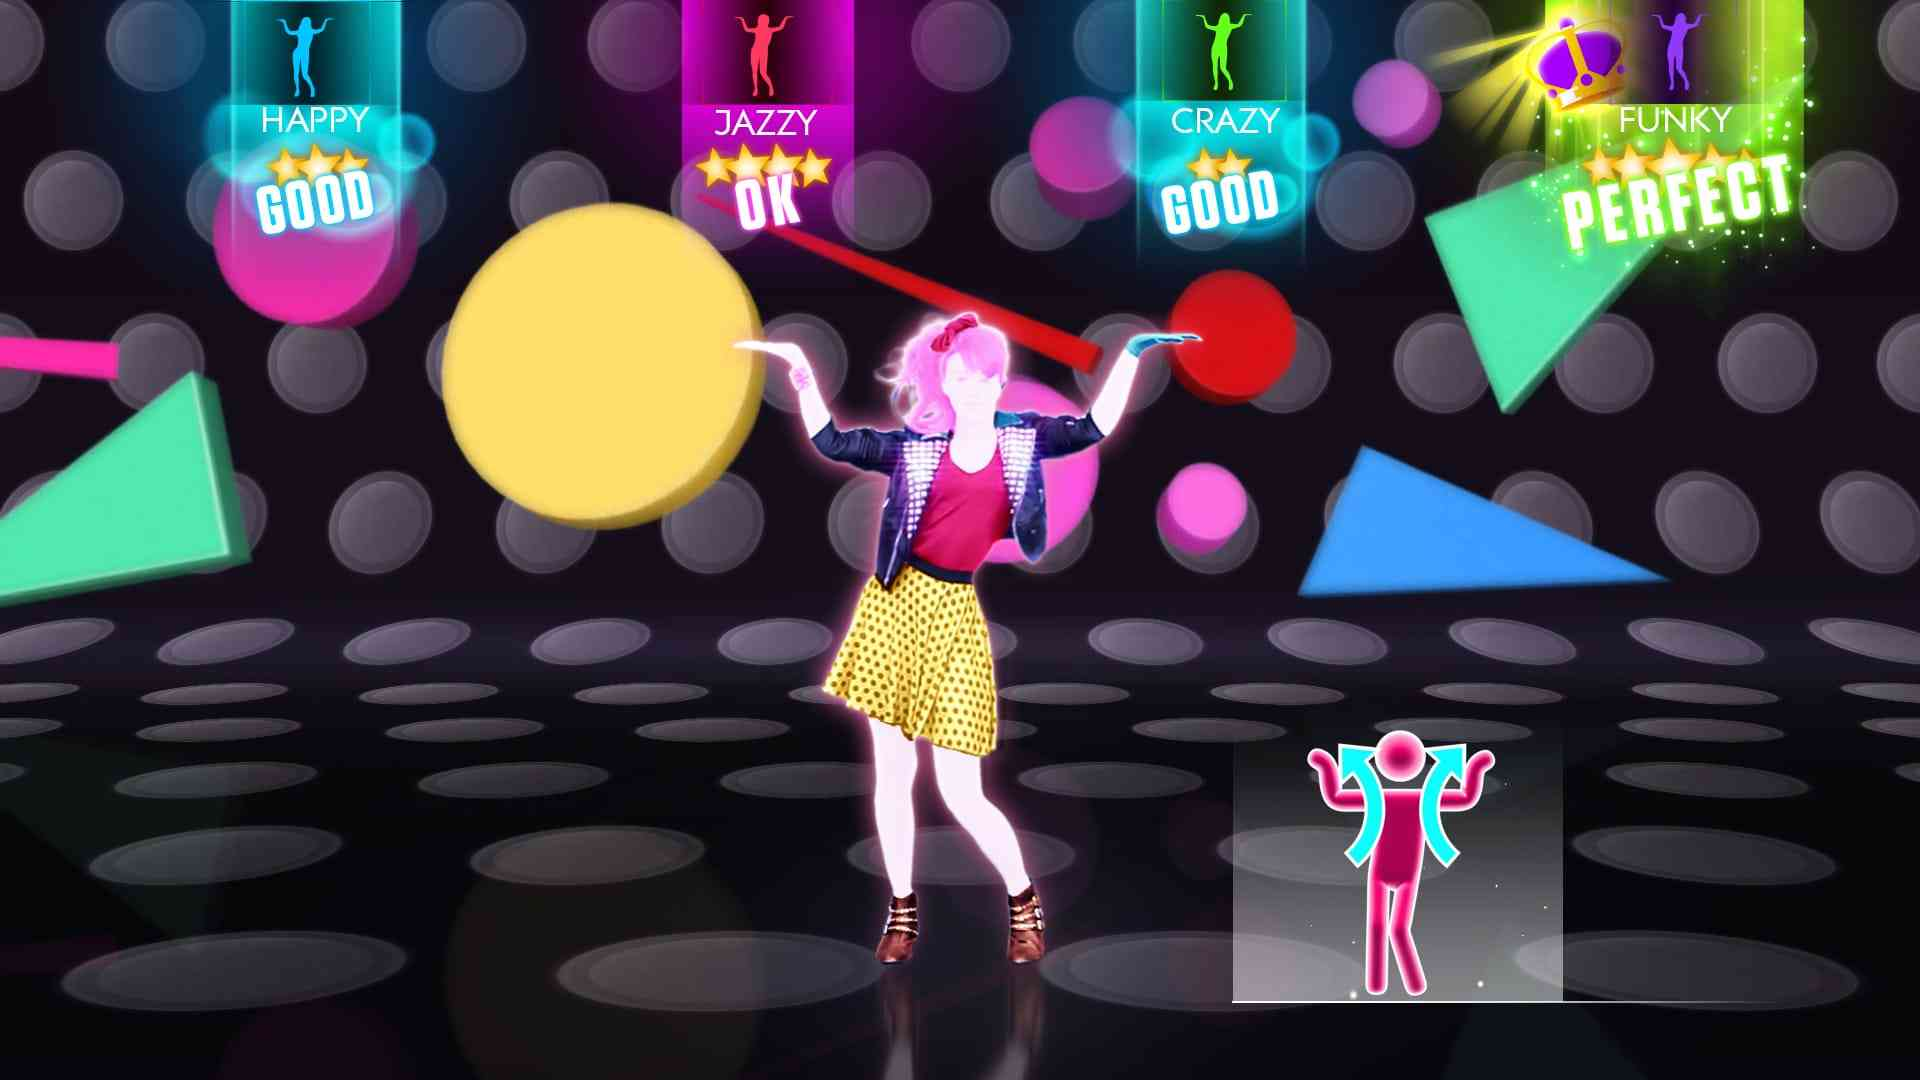 Canadian Online Gamers 187 Just Dance 2014 Wii U Review Who Has Moves Like Jagger